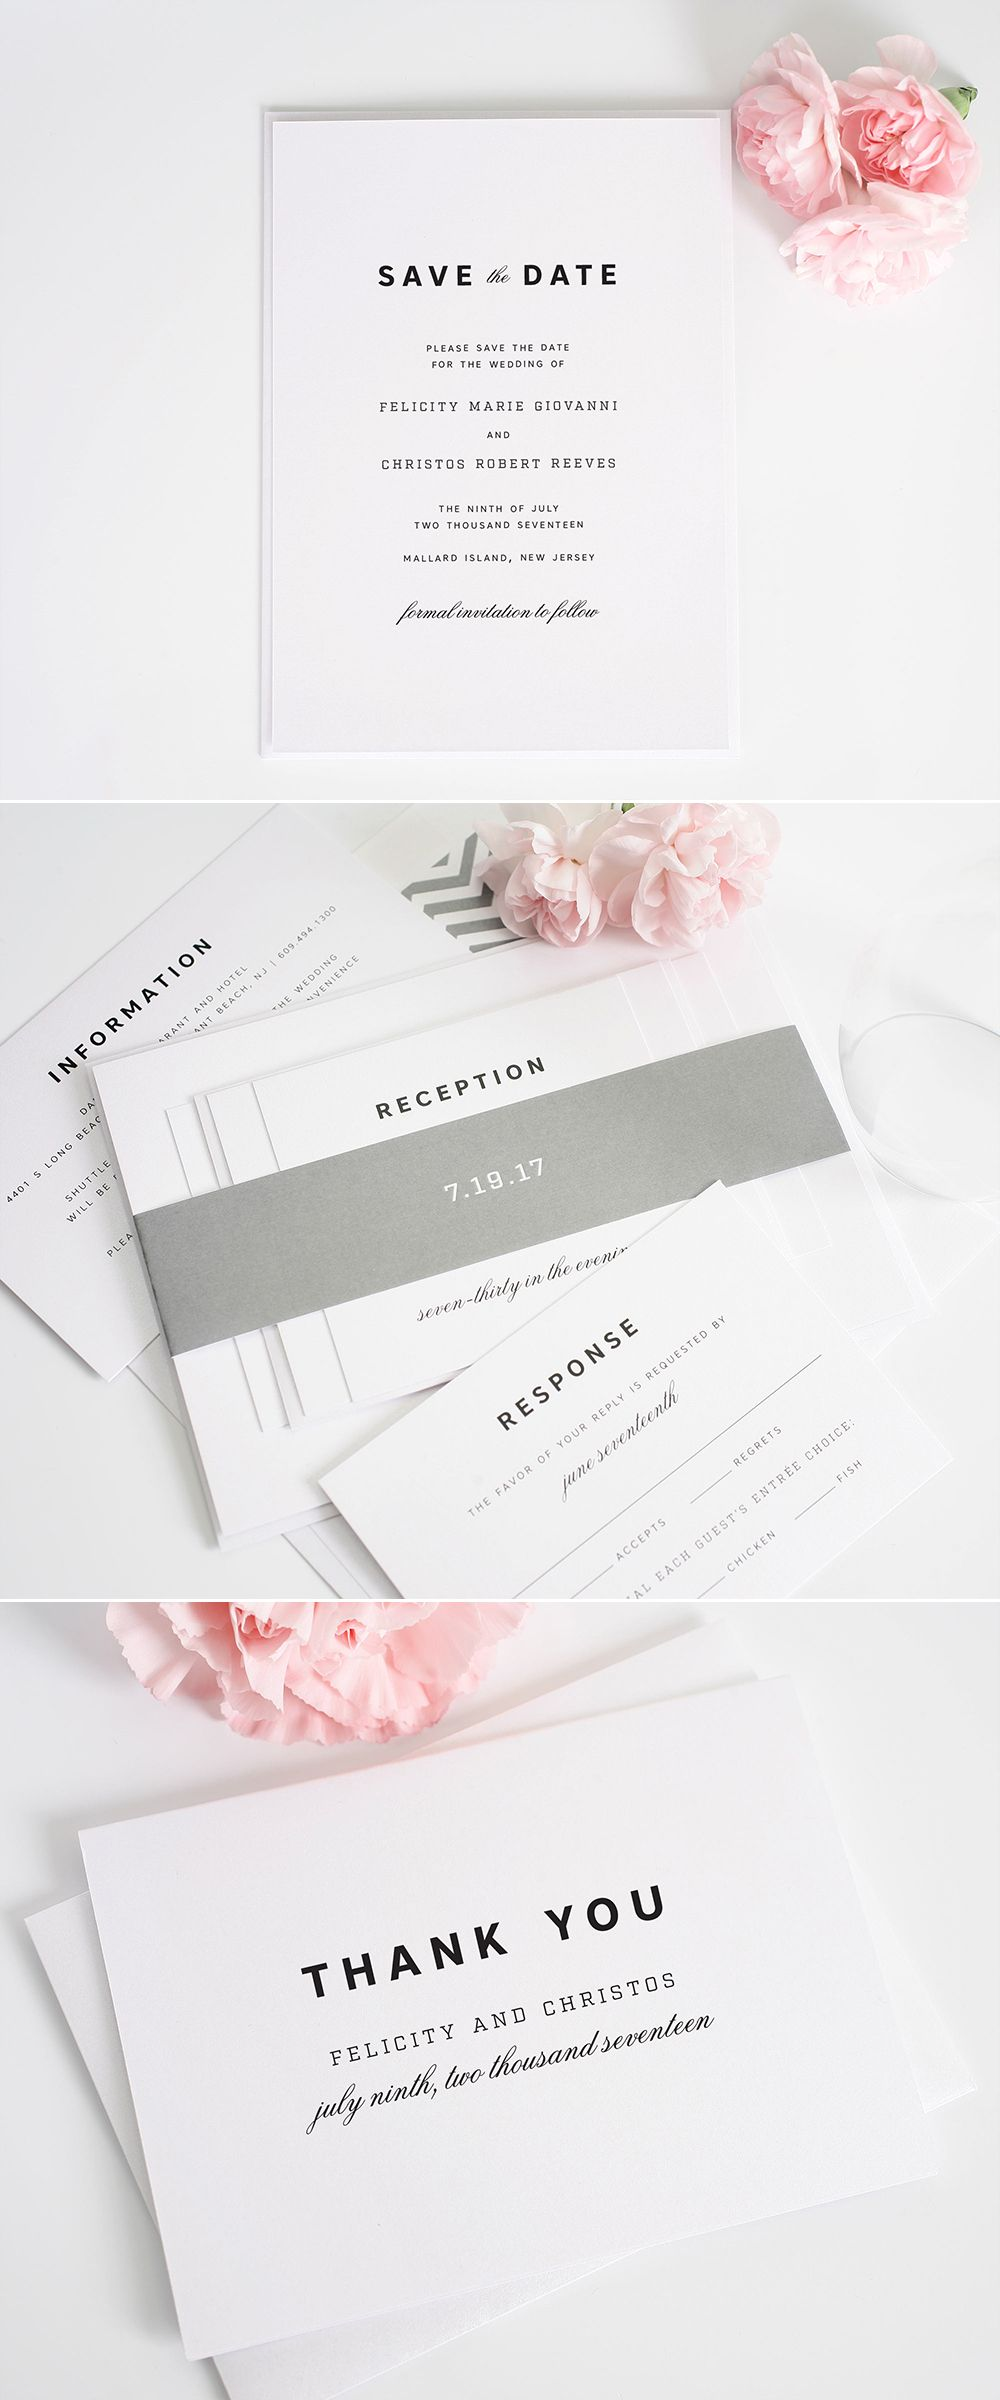 Urban Romance Wedding Invitations Shine Wedding Invitations